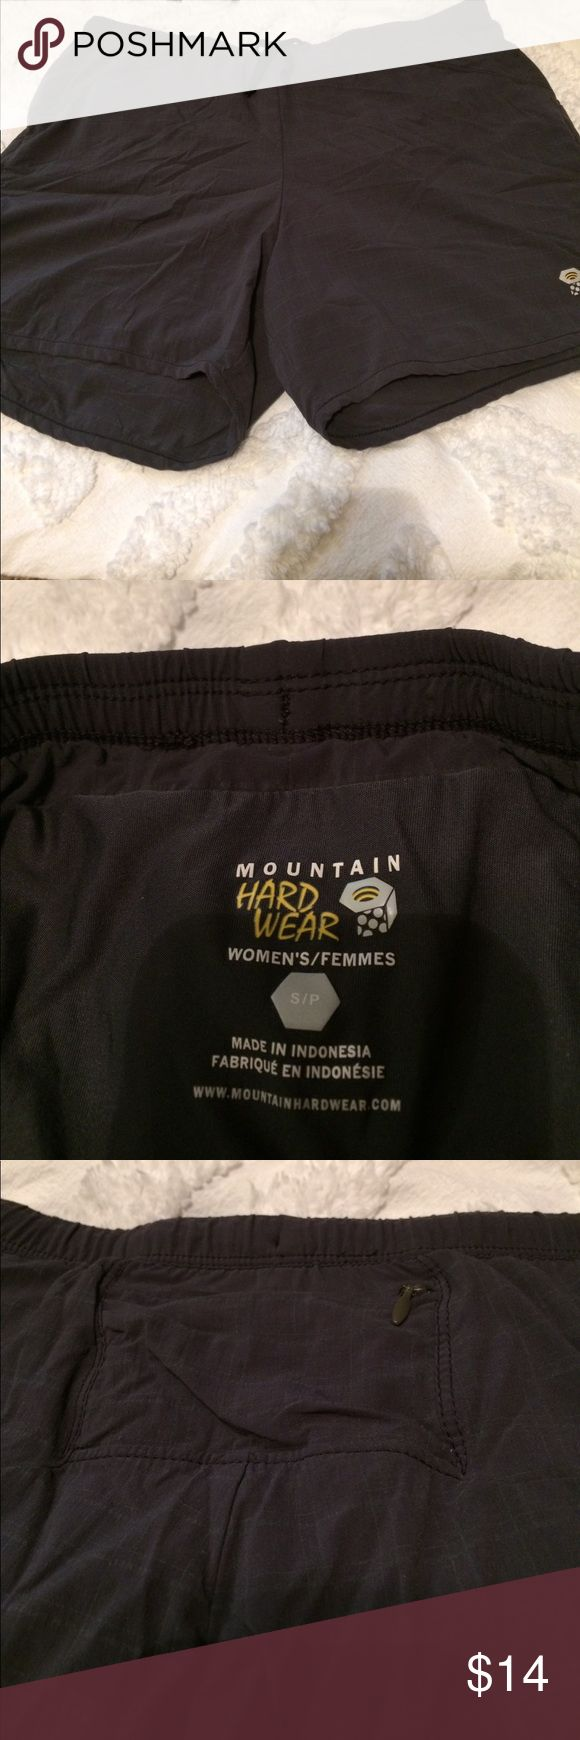 Mountain Hard Ware running/hiking shorts Grey lightweight shorts with built in undergarment. Small zipper pocket in back. Good condition and perfect for the outdoors! Mountain Hard Wear Shorts